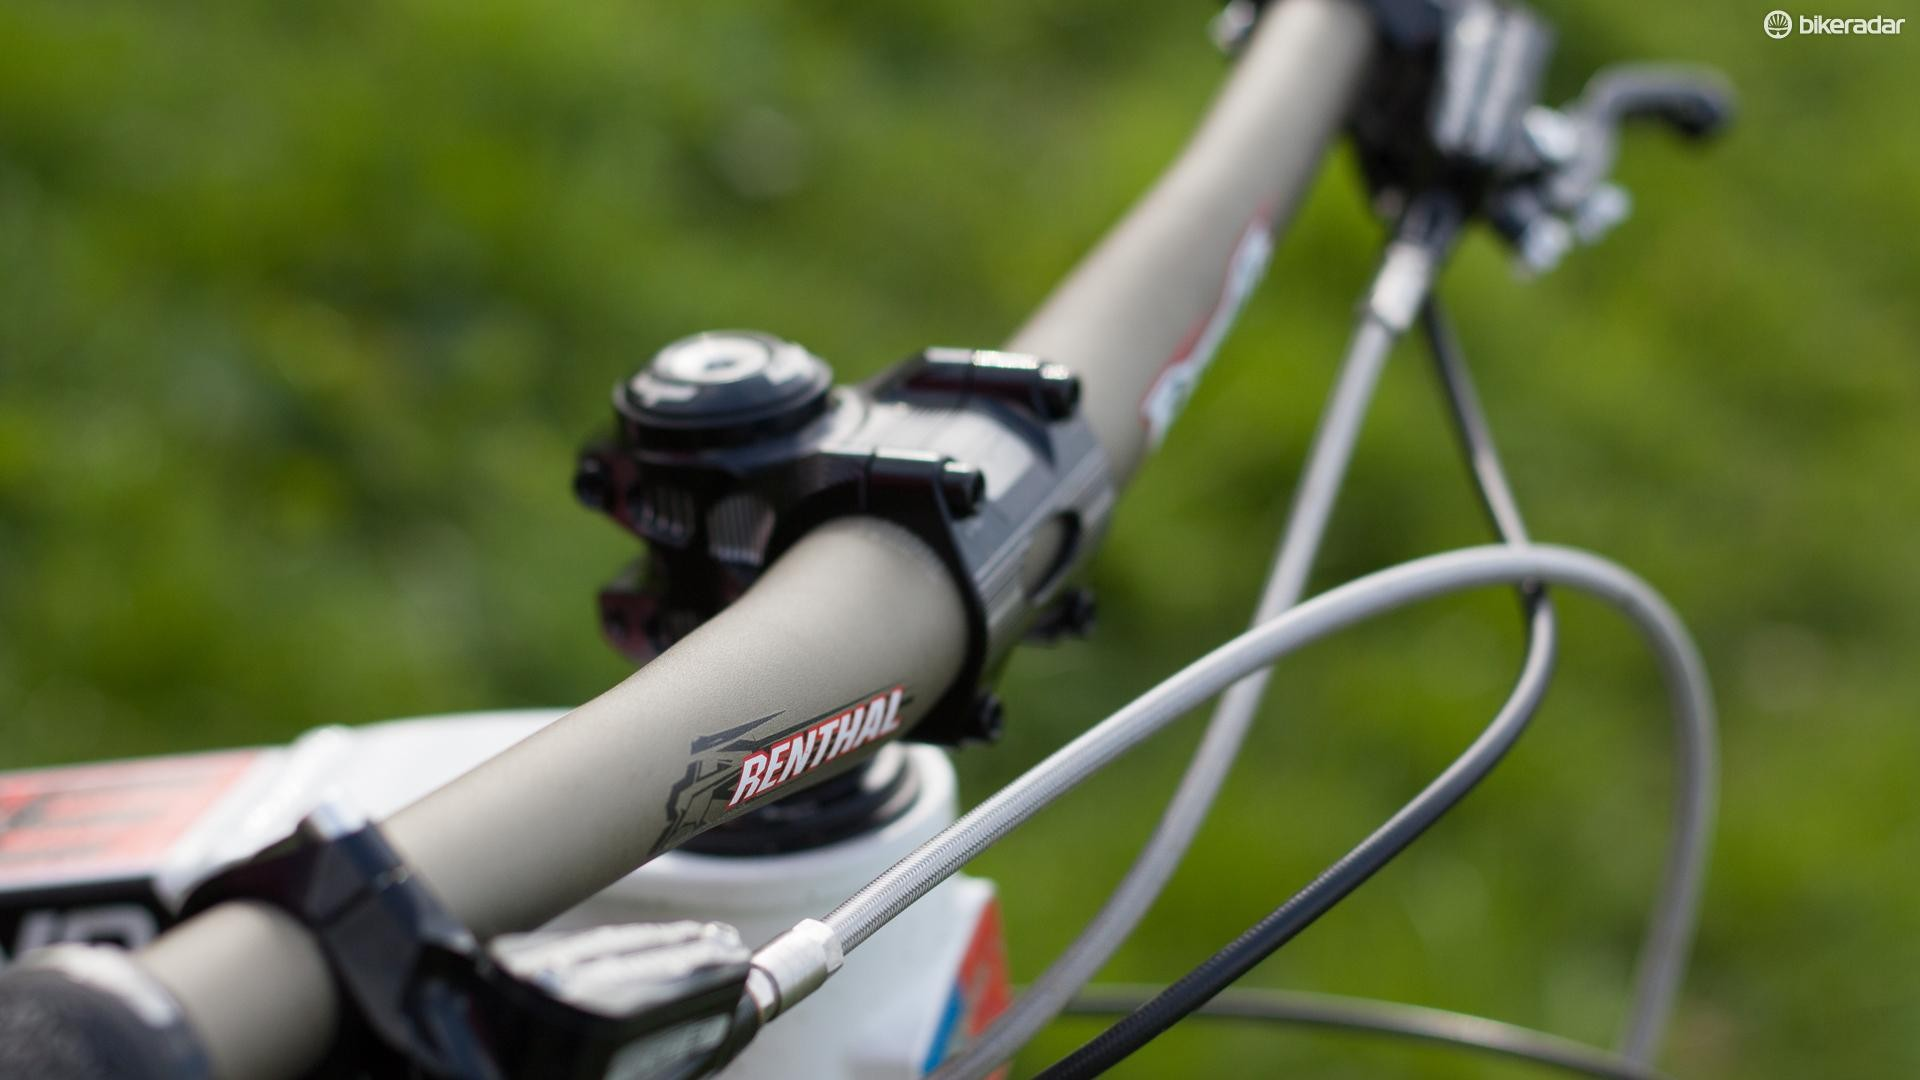 Fitting a shorter stem usually amounts to a significant improvement in handling